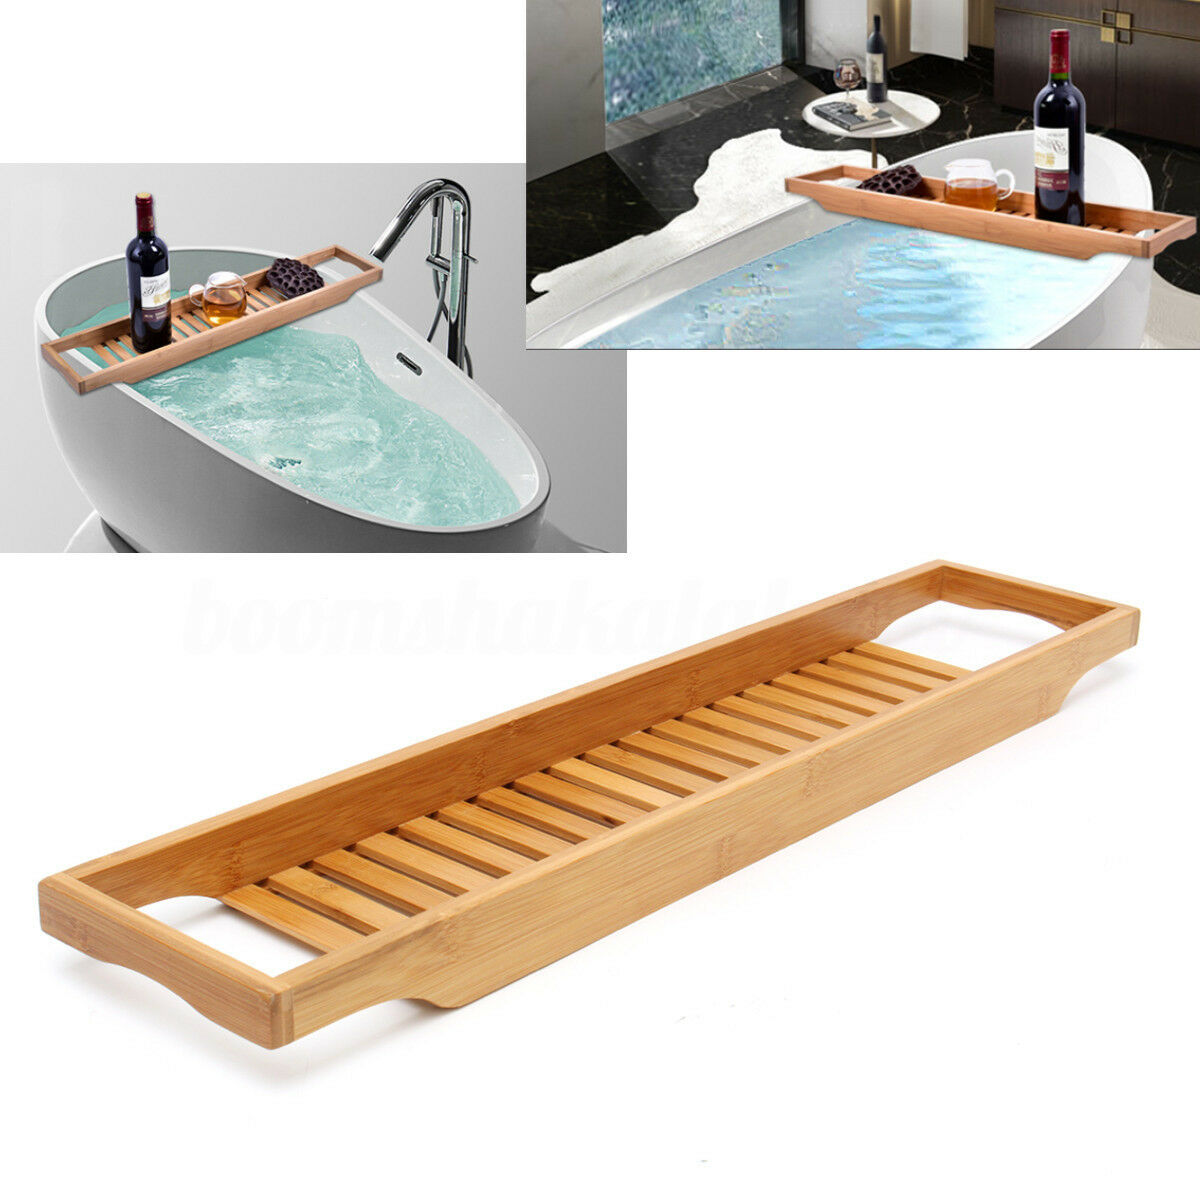 Bathroom Bamboo Bath Shelf Caddy Wine Holder Tray Bathtub